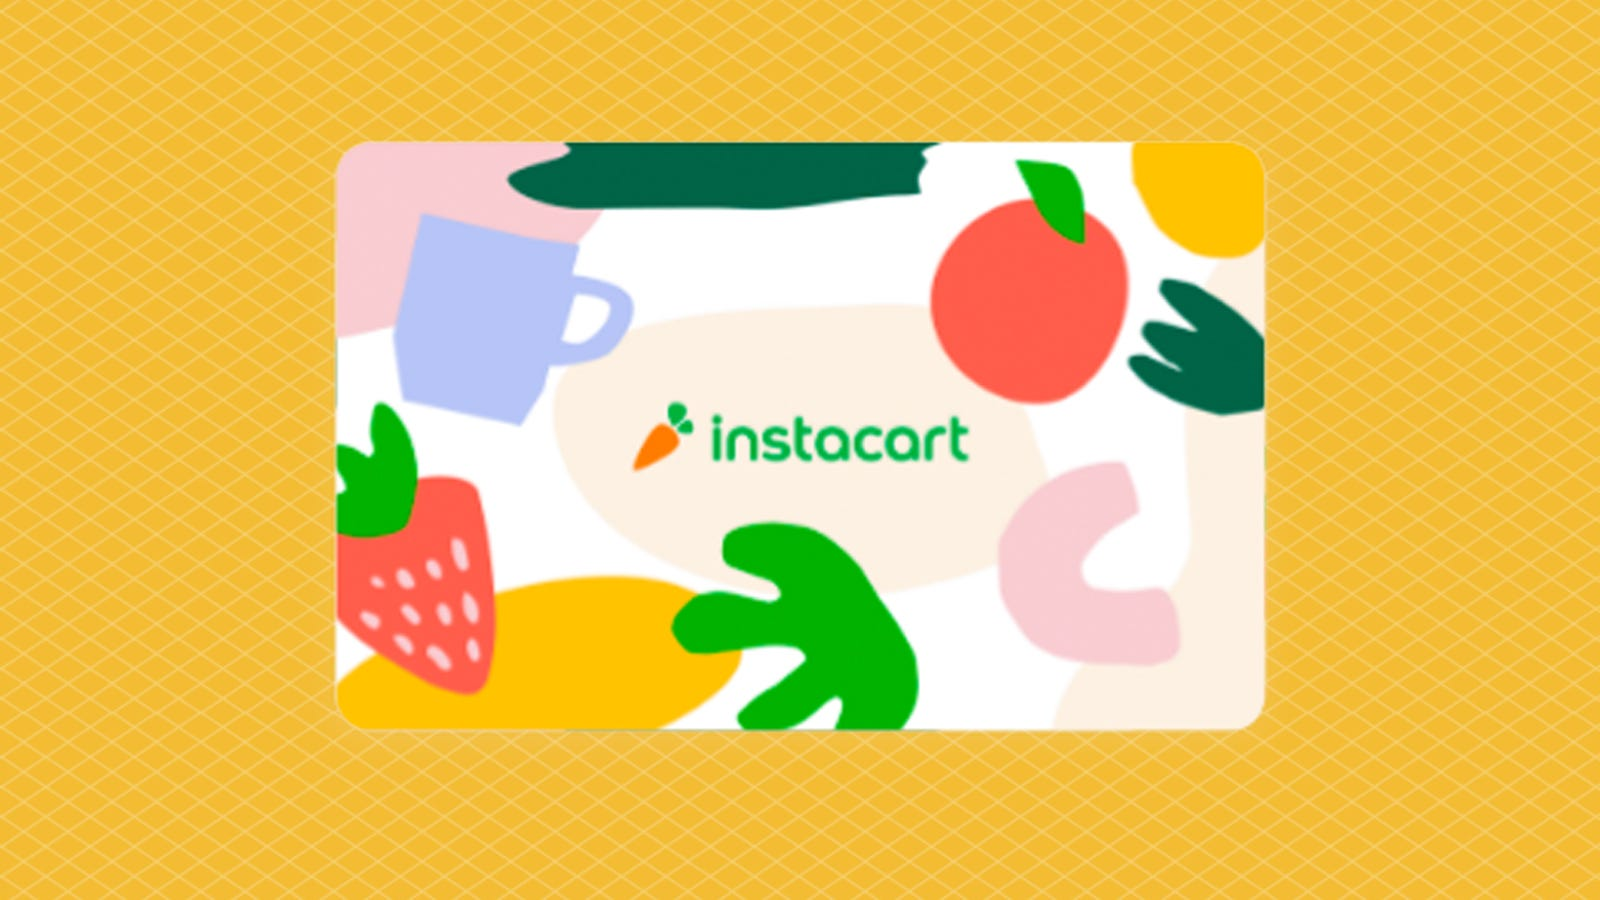 Instacart to eliminate nearly 2,000 positions, upsetting union officials